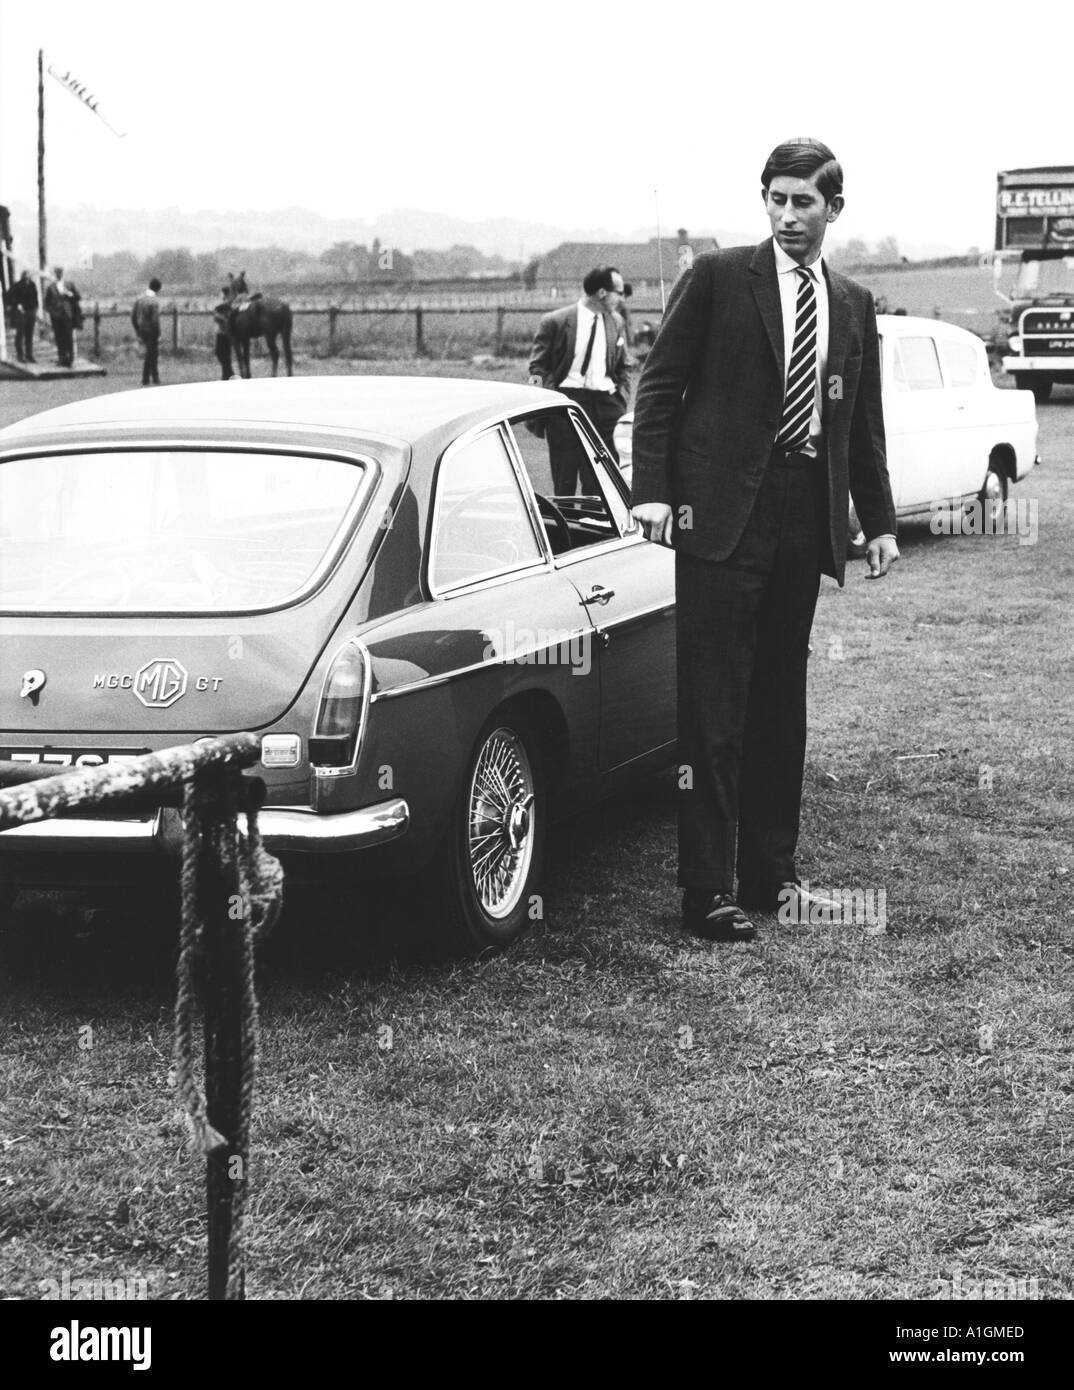 The Subtle Six: 1968-1969 MGC and MGC/GT brochures | Hemmings Daily